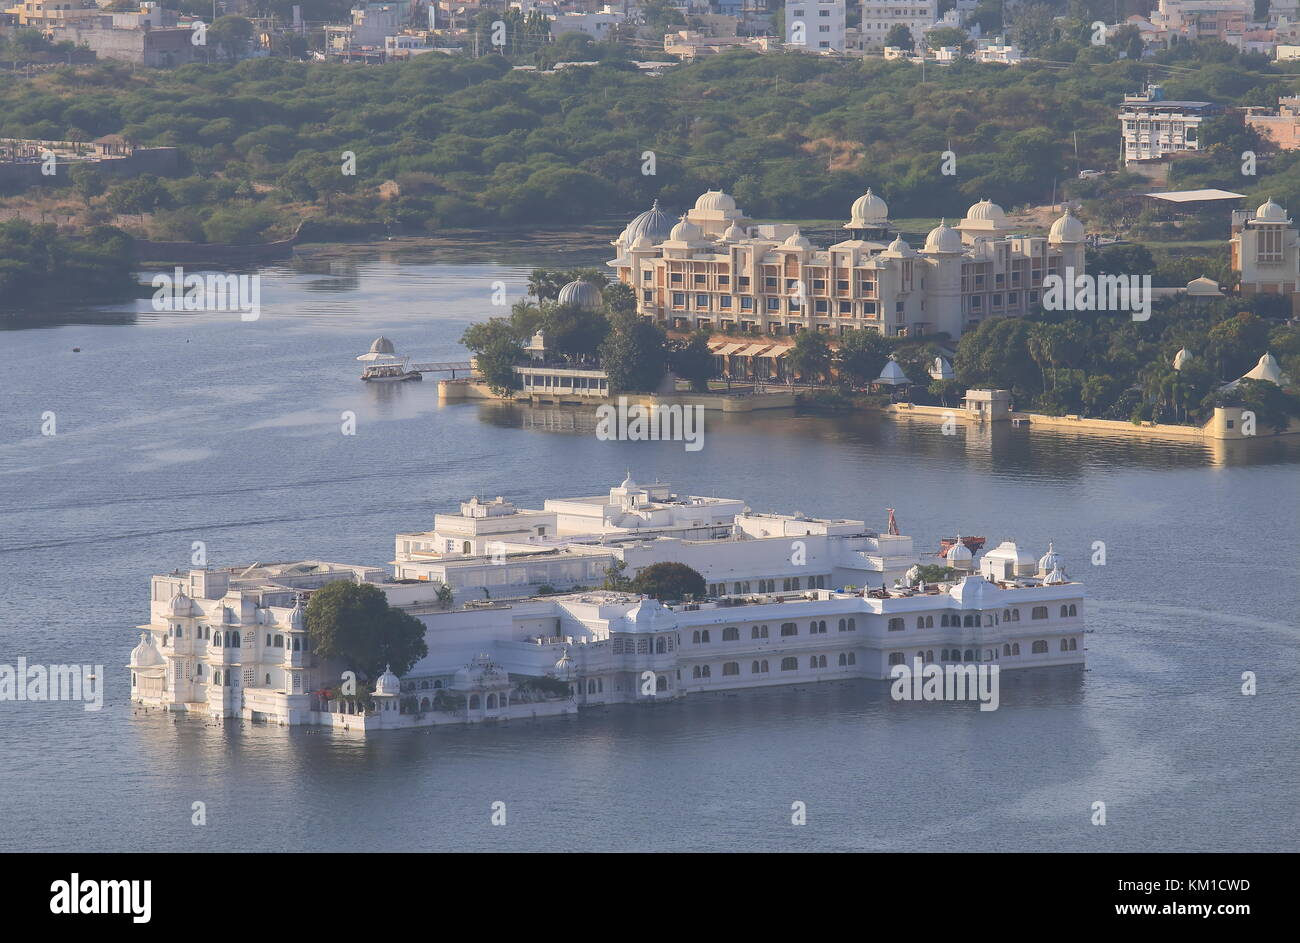 Cityscape of historical city Udaipur India - Stock Image